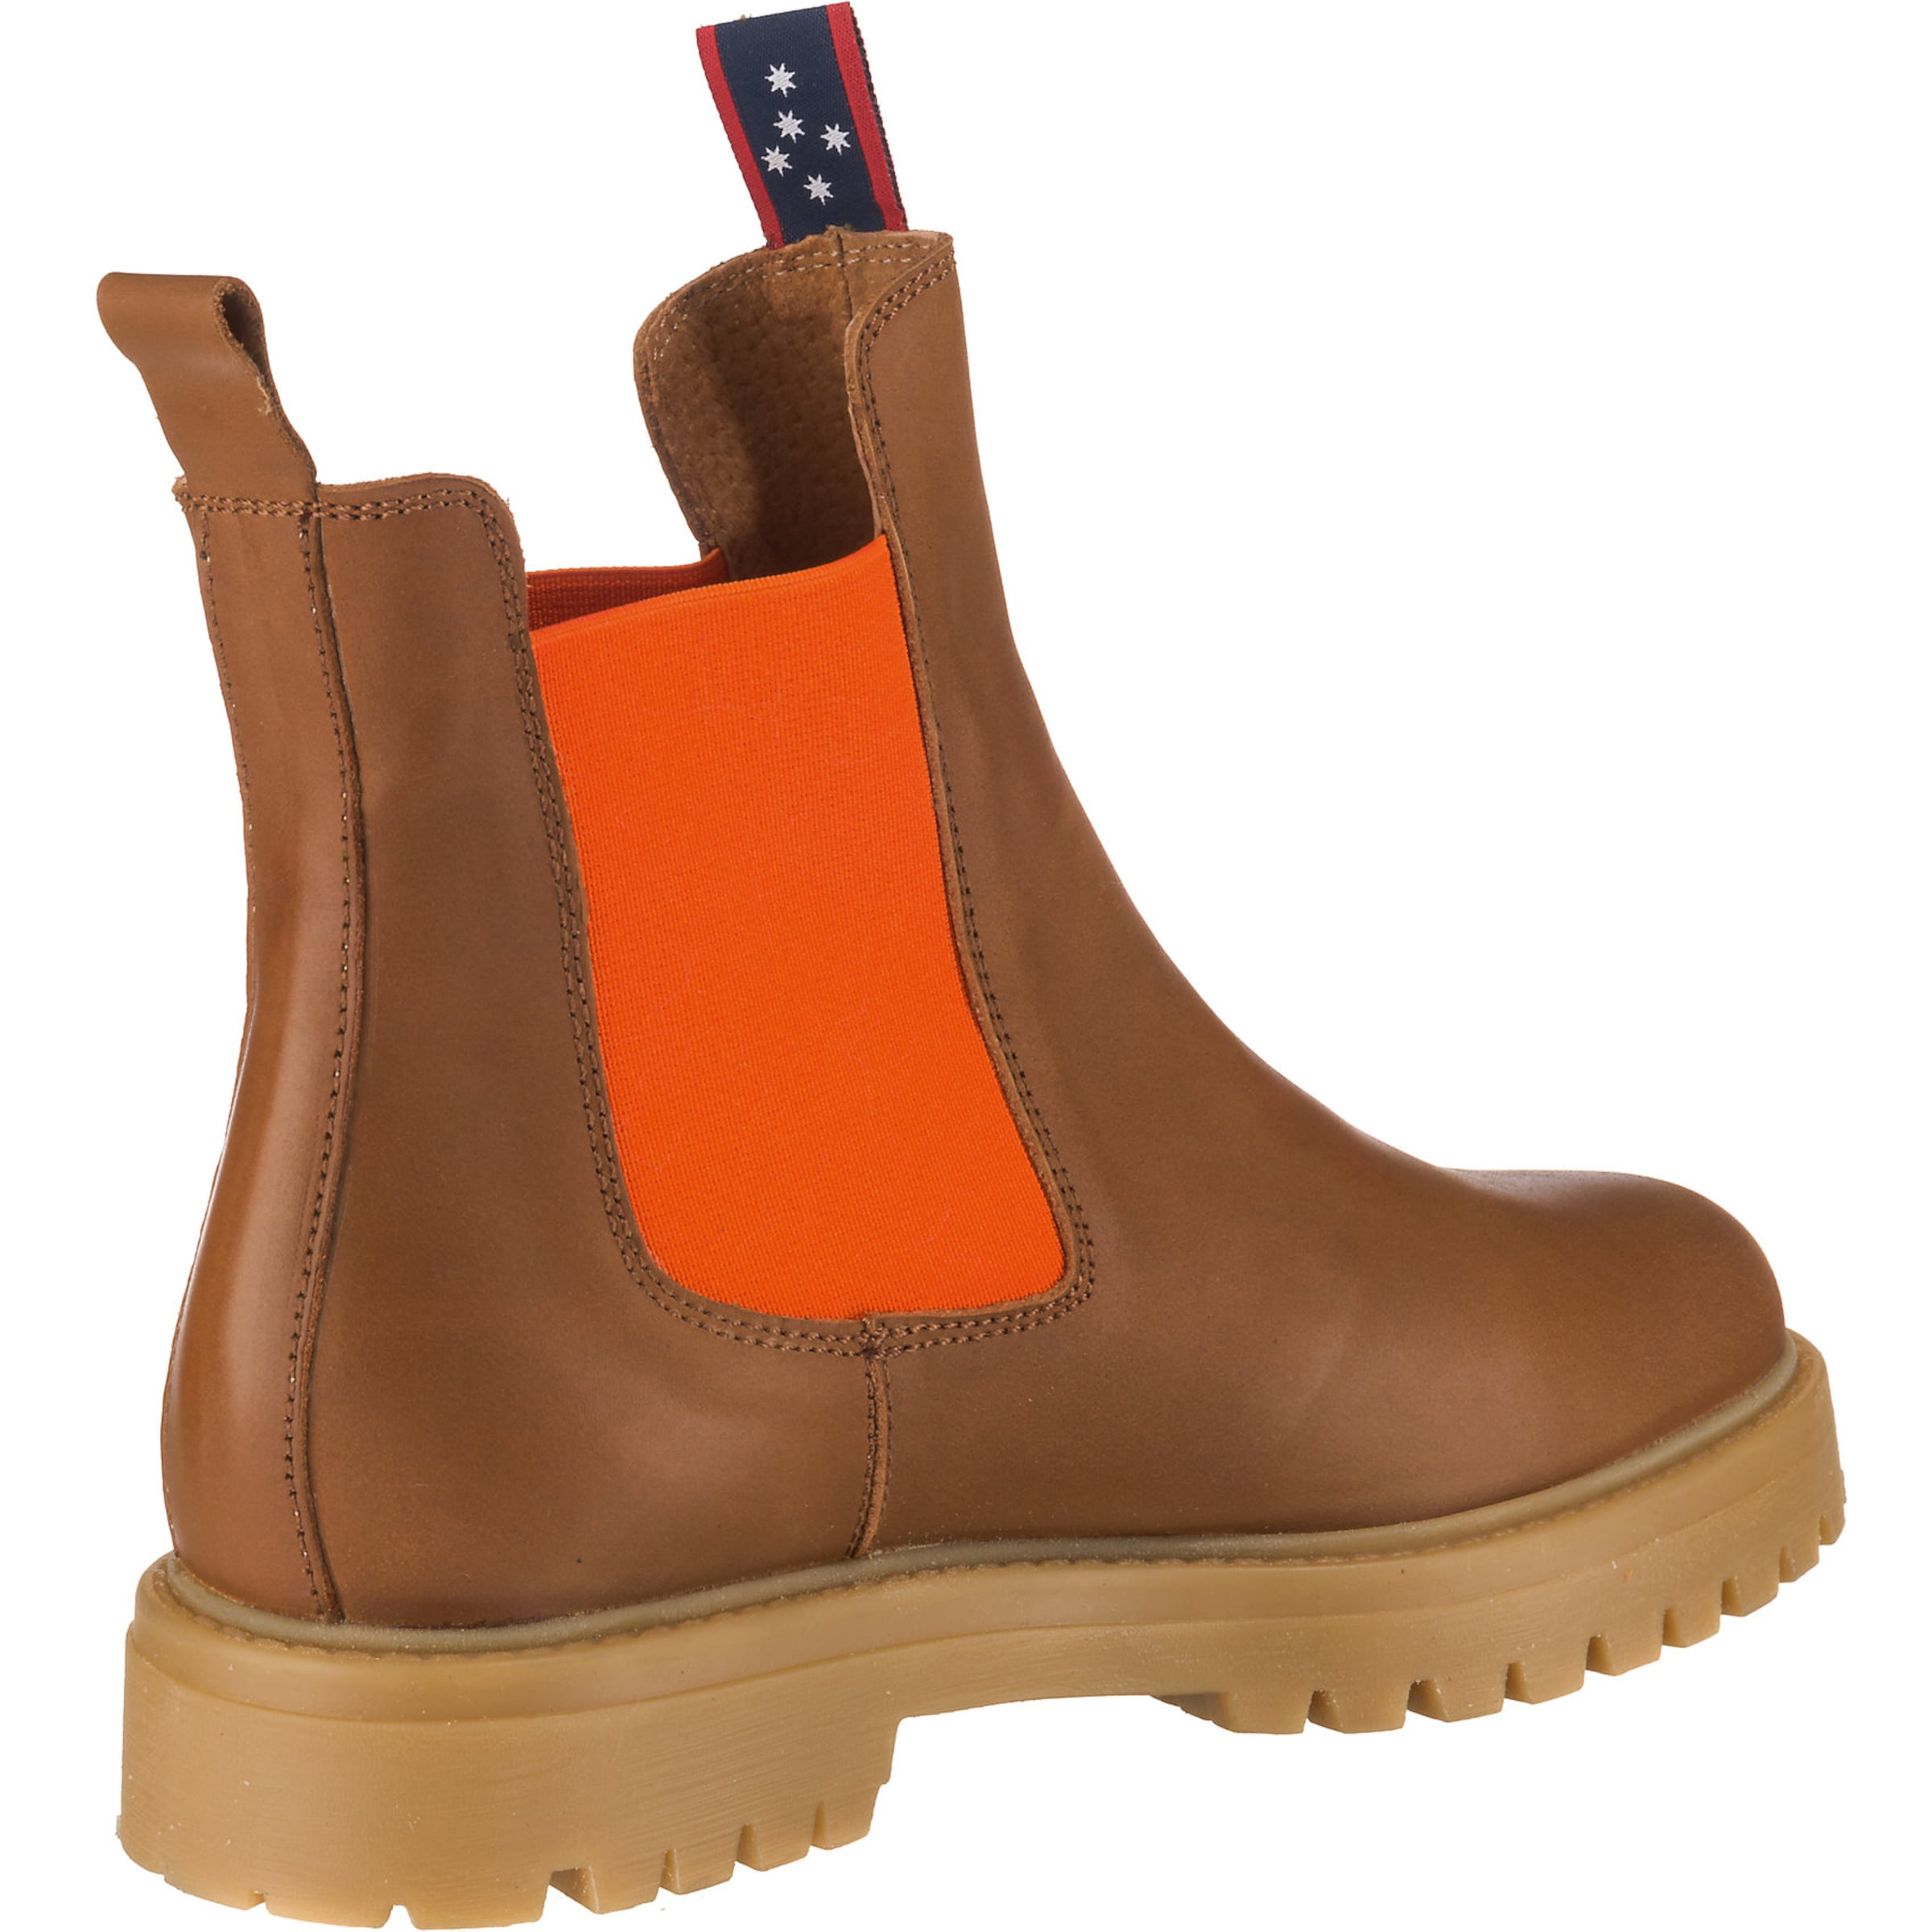 JOLANA & FENENA Chelsea Boot in cognac / orange